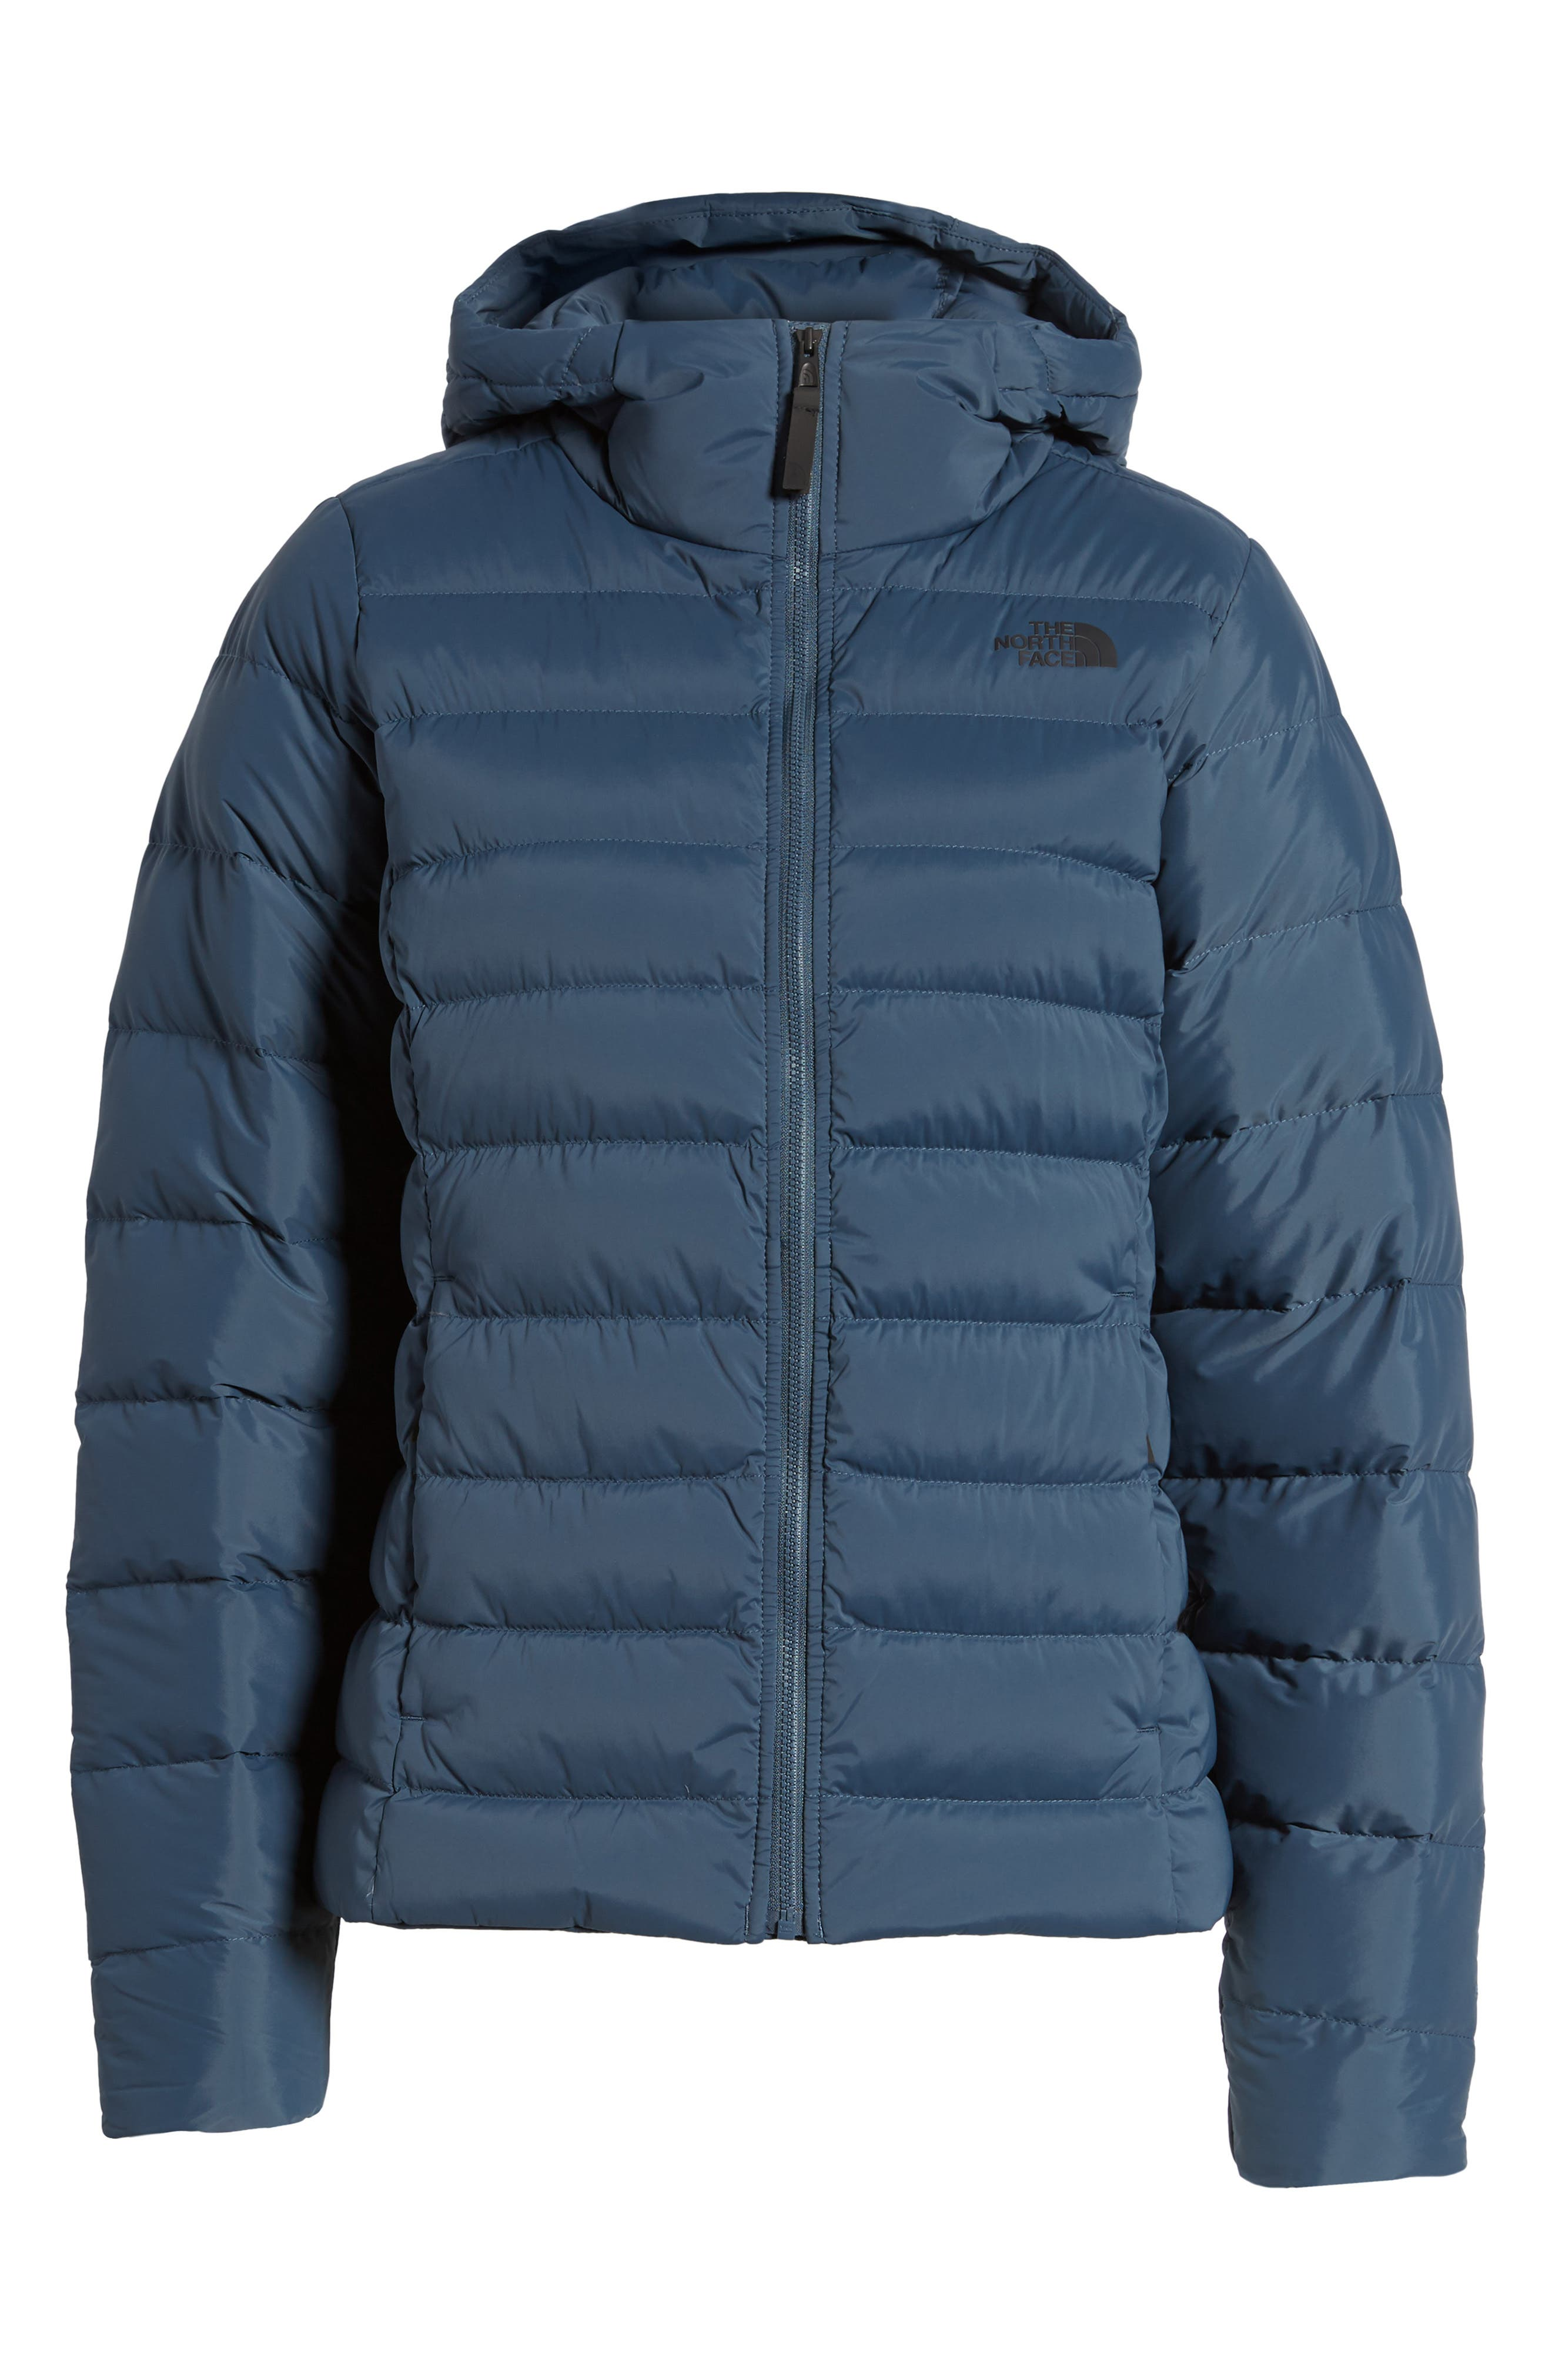 W Hooded Stretch Down Jacket,                         Main,                         color, Ink Blue